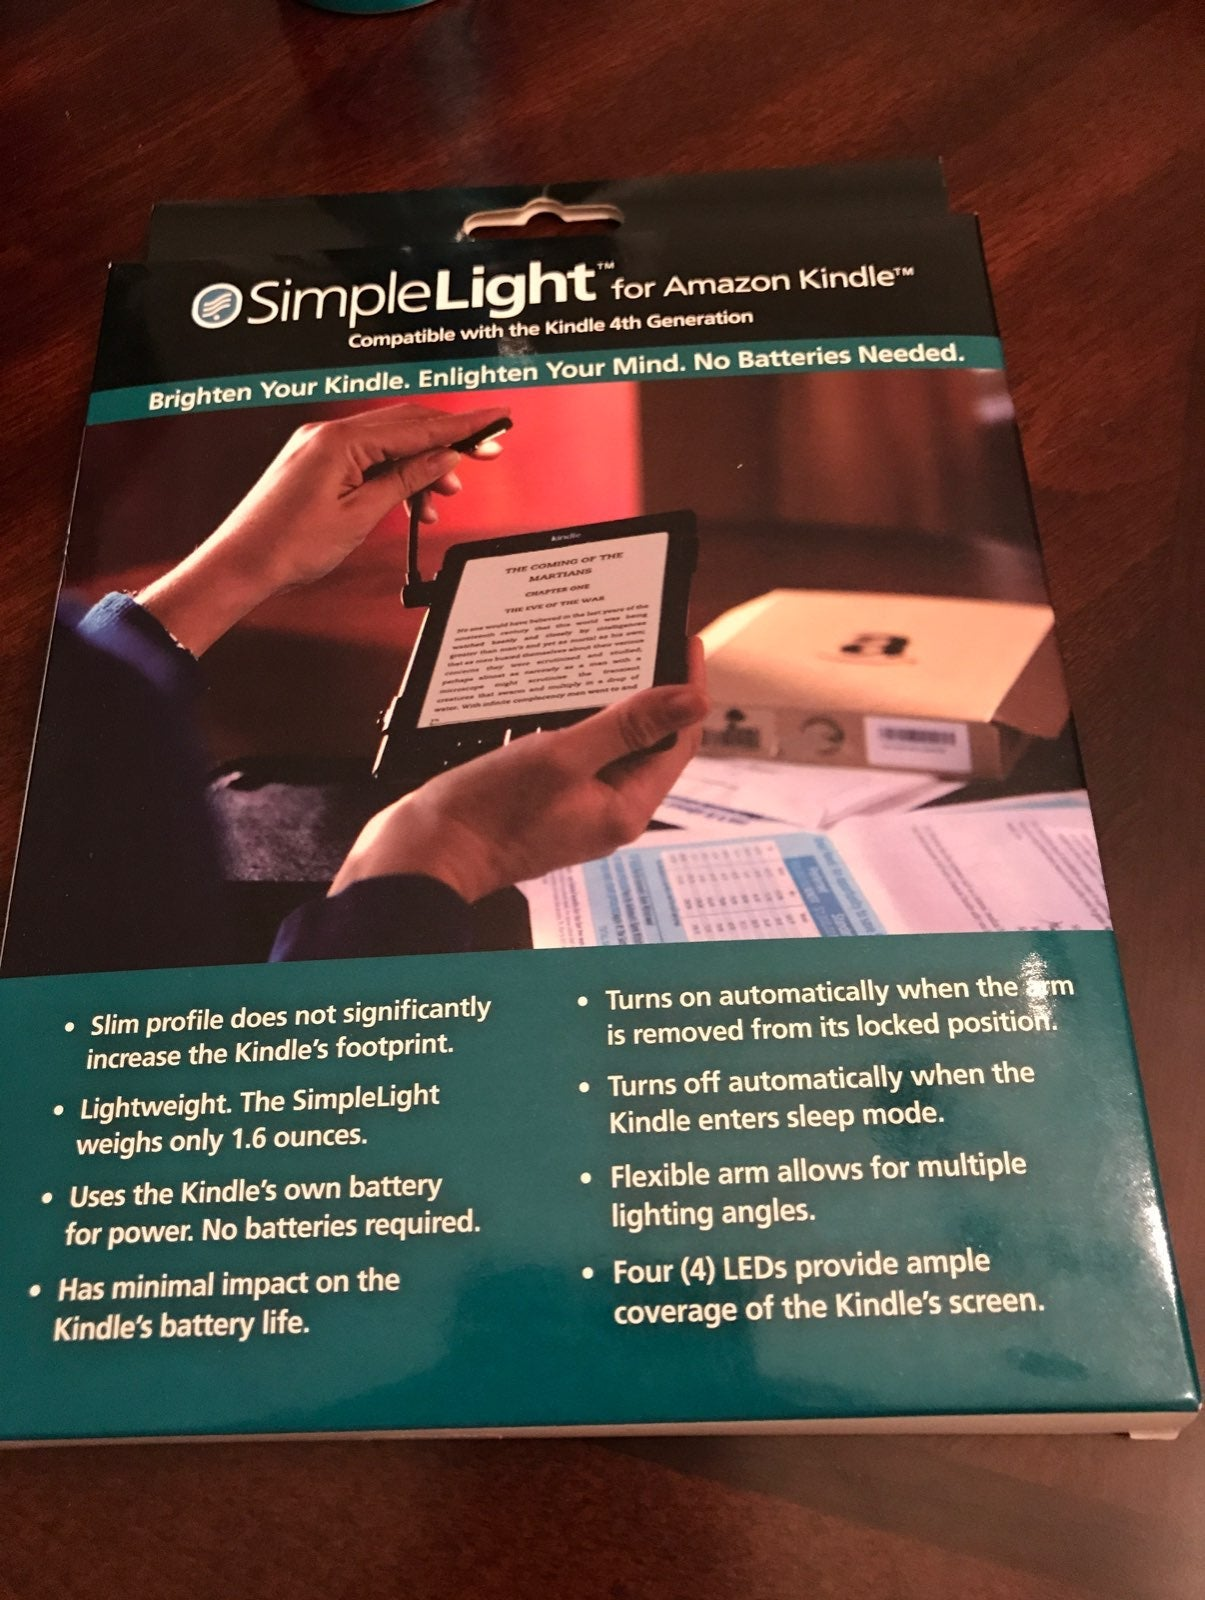 Simple Light for Amazon Kindle